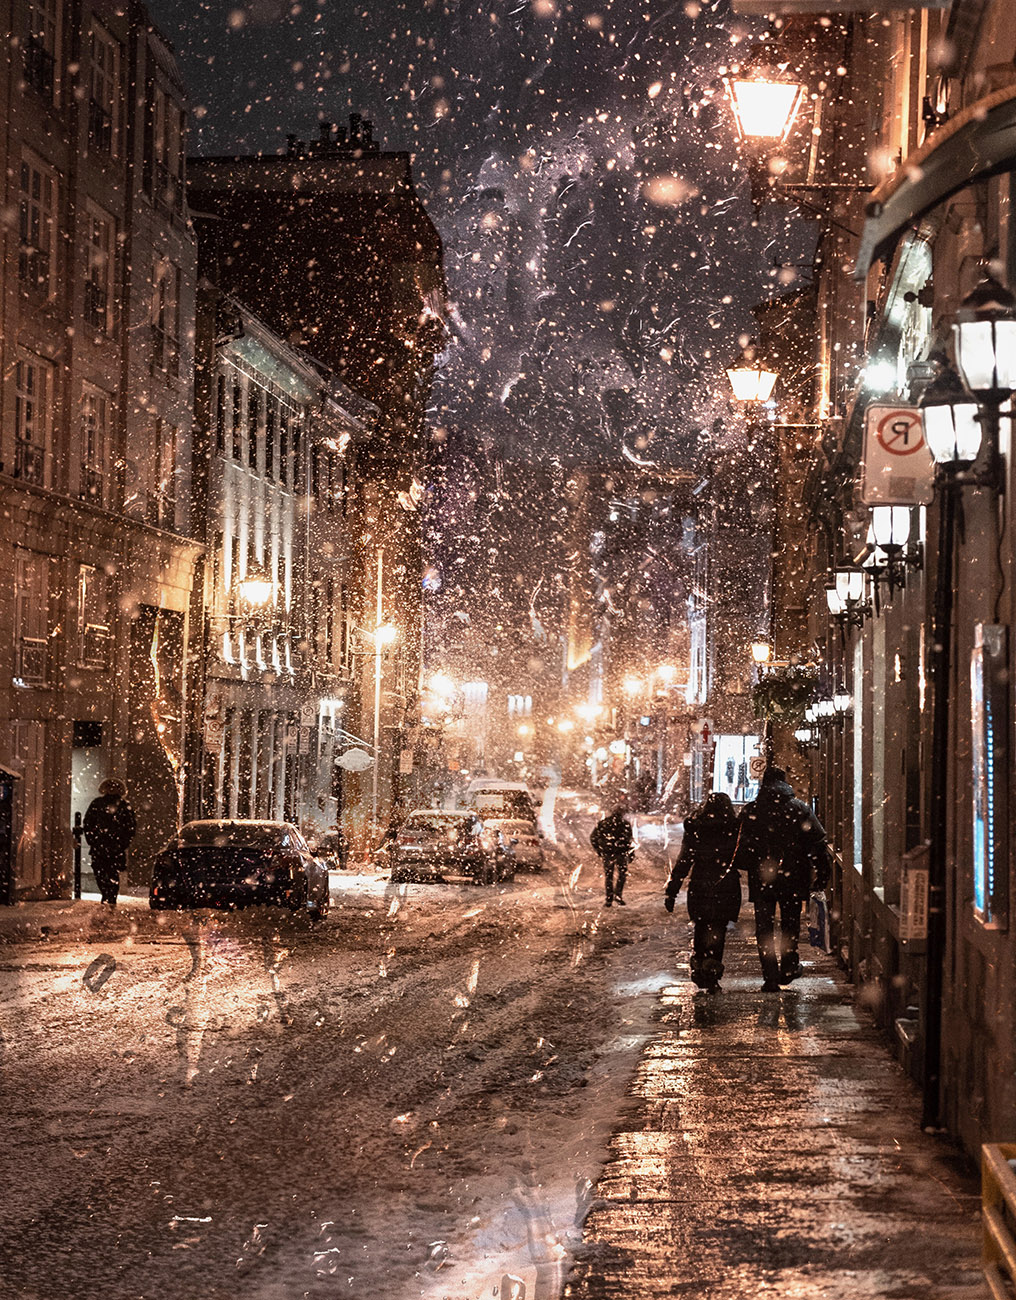 Bad Winter Weather in City Street - RF Stock Image